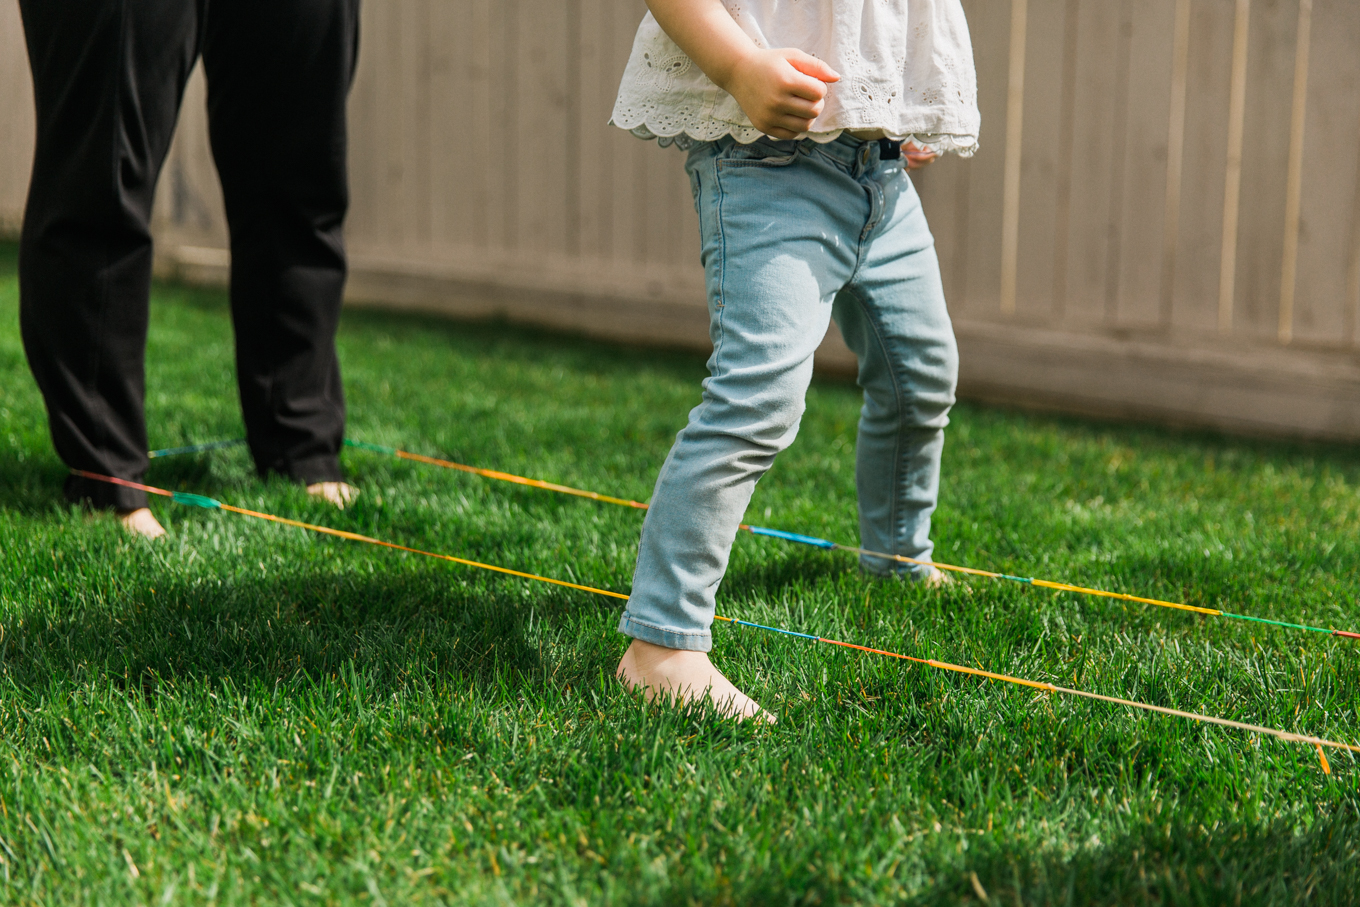 The benefits of simple play when it comes to a child's development are innumerable. This list of traditional children's games is a great place to start when it comes to ditching the screens and enjoying some good old-fashioned fun!